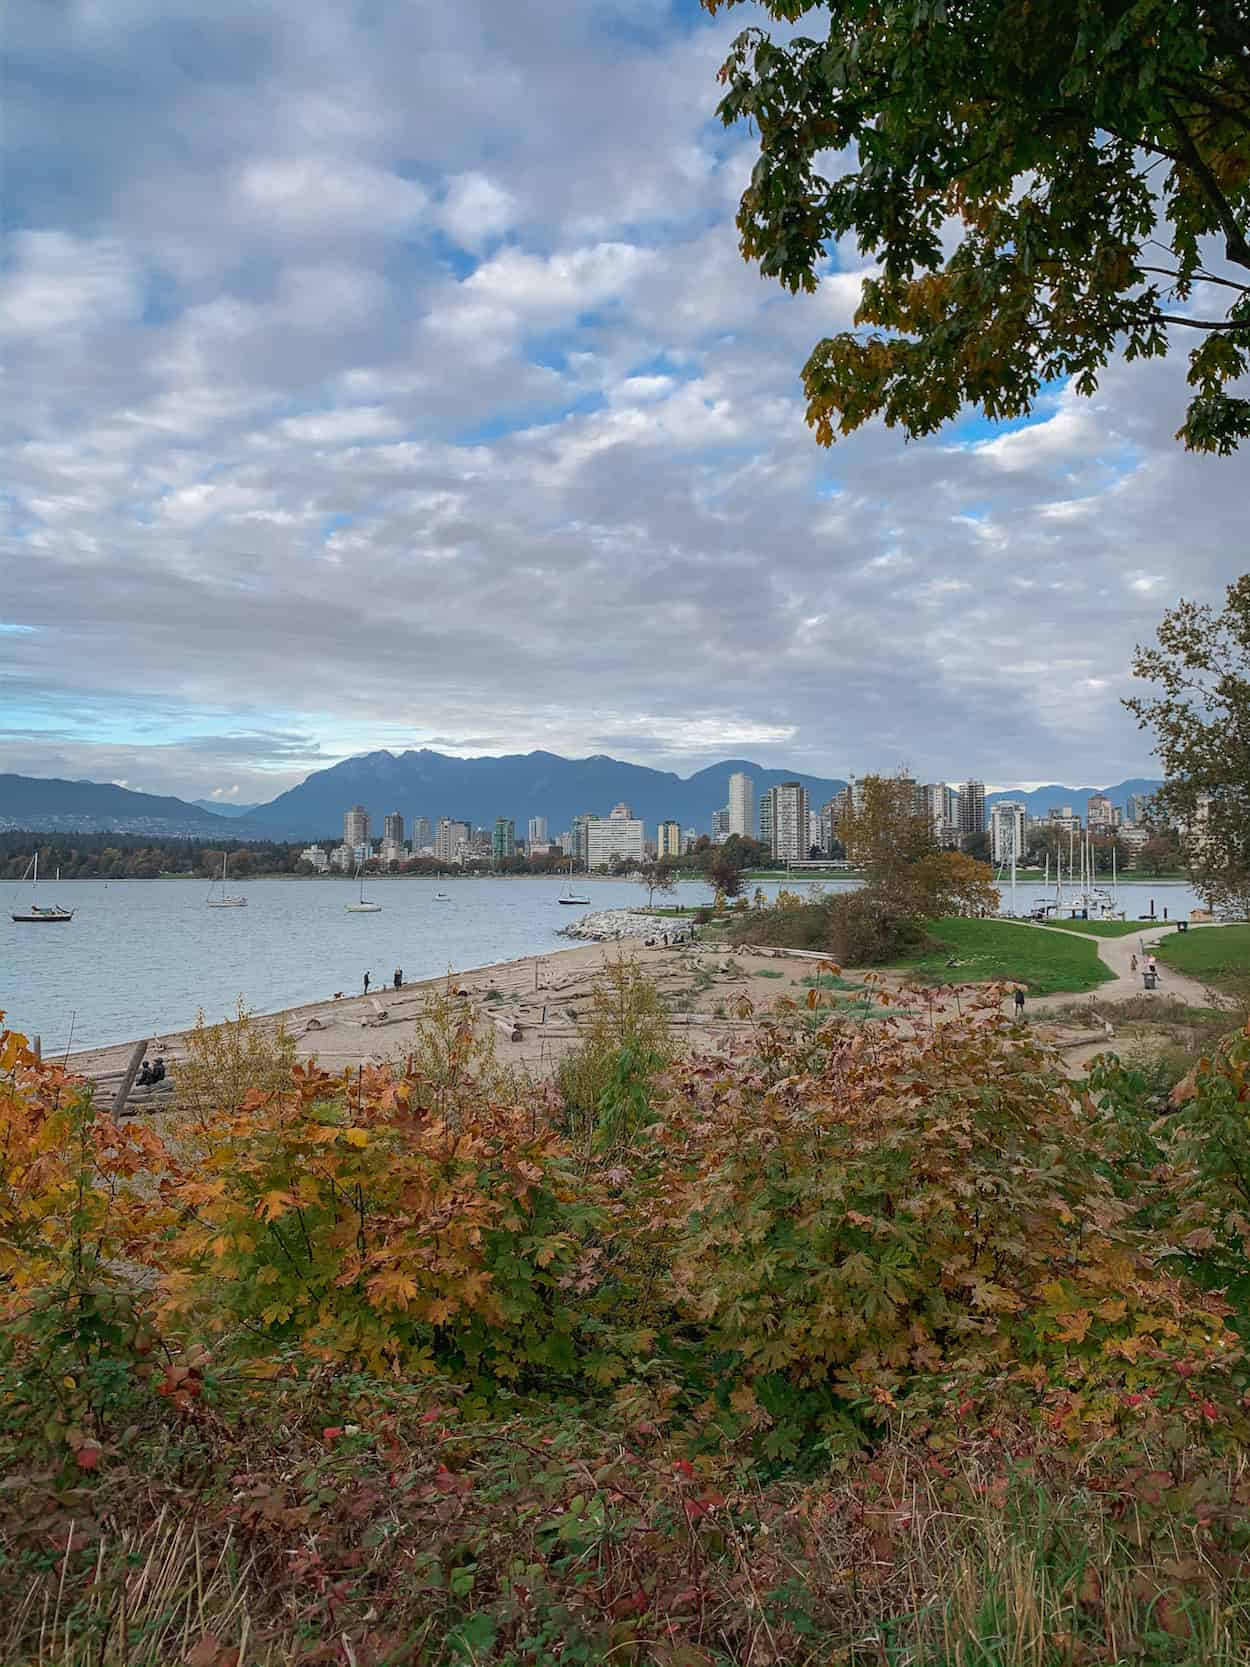 Hadden Park in Vancouver, British Columbia